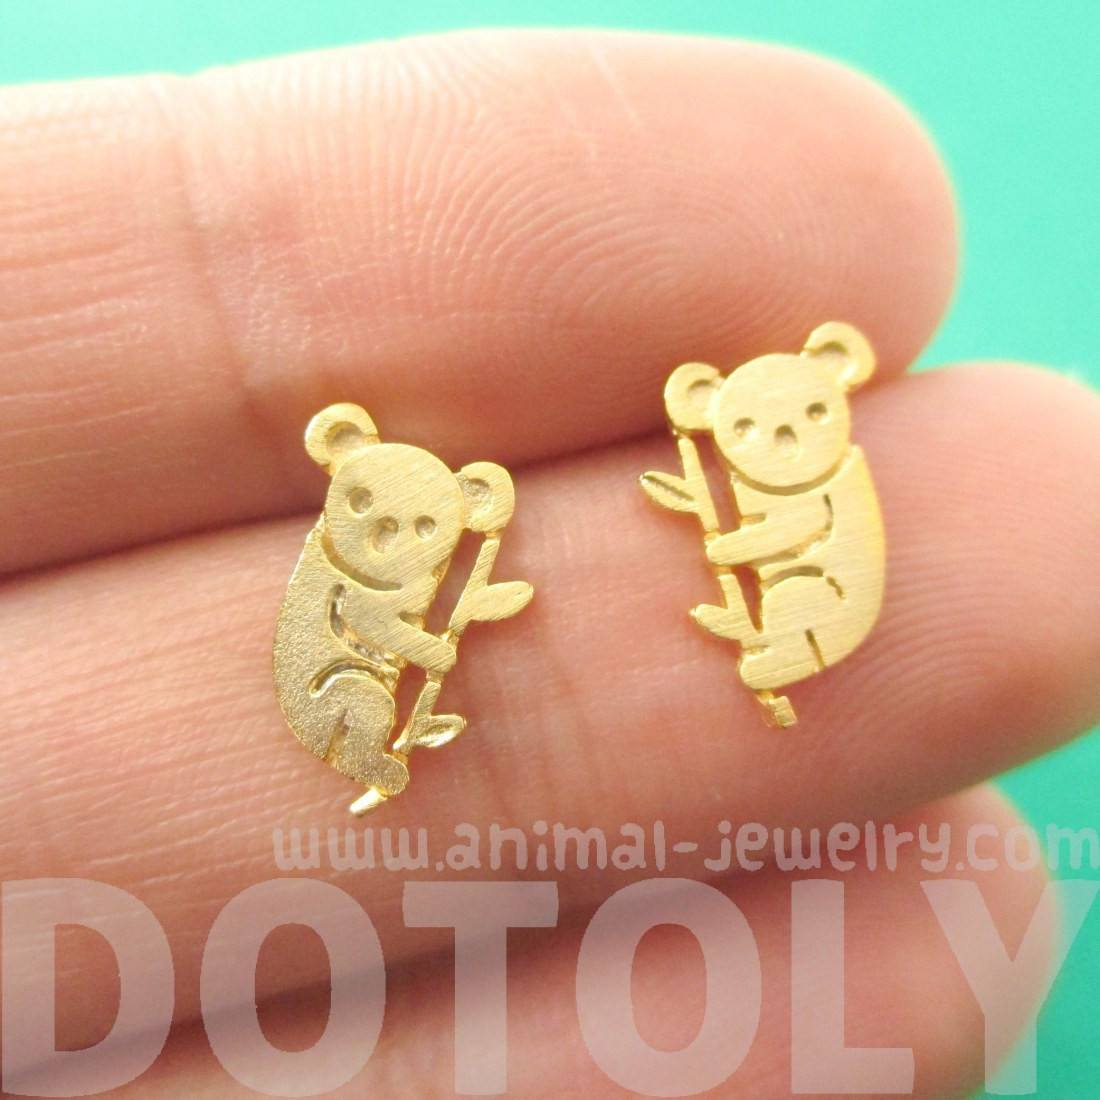 Adorable Koala Bear Silhouette Shaped Stud Earrings in Gold